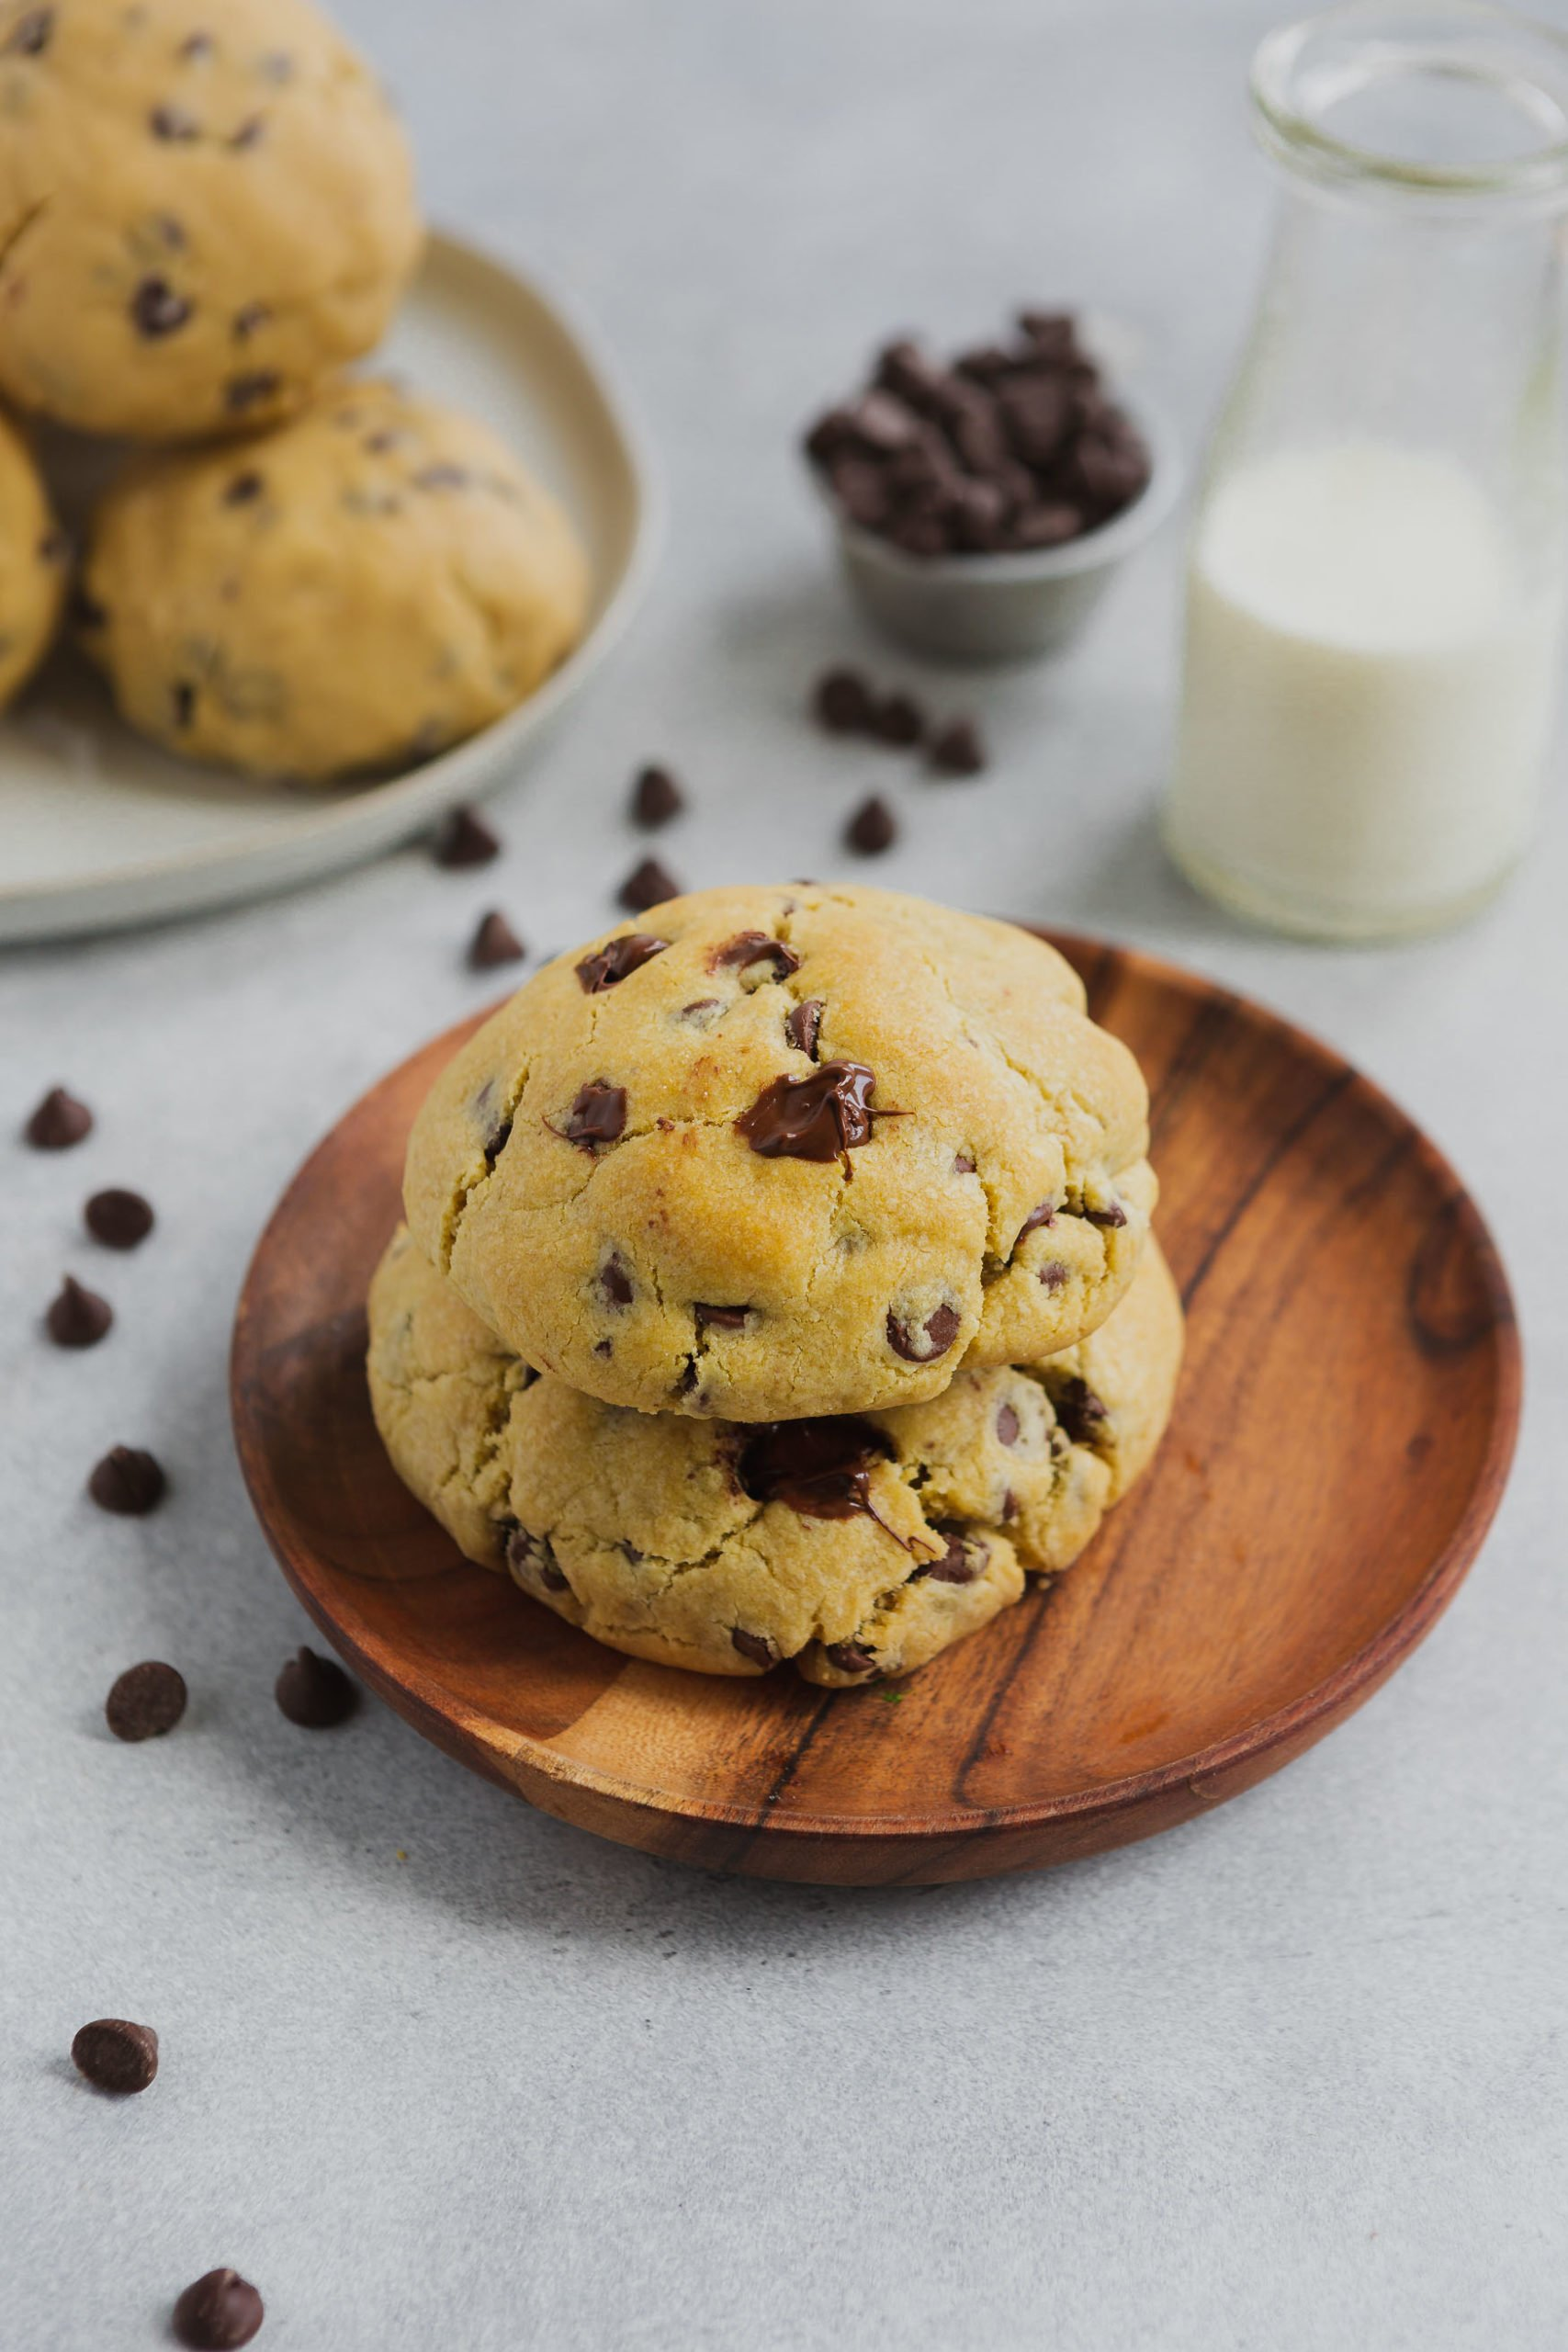 a photo of two large and thick chocolate chip cookies stacked on each other on a small wooden plate with a plate of more cookies in the background and a small cup or chocolate chips and a carafe of milk.